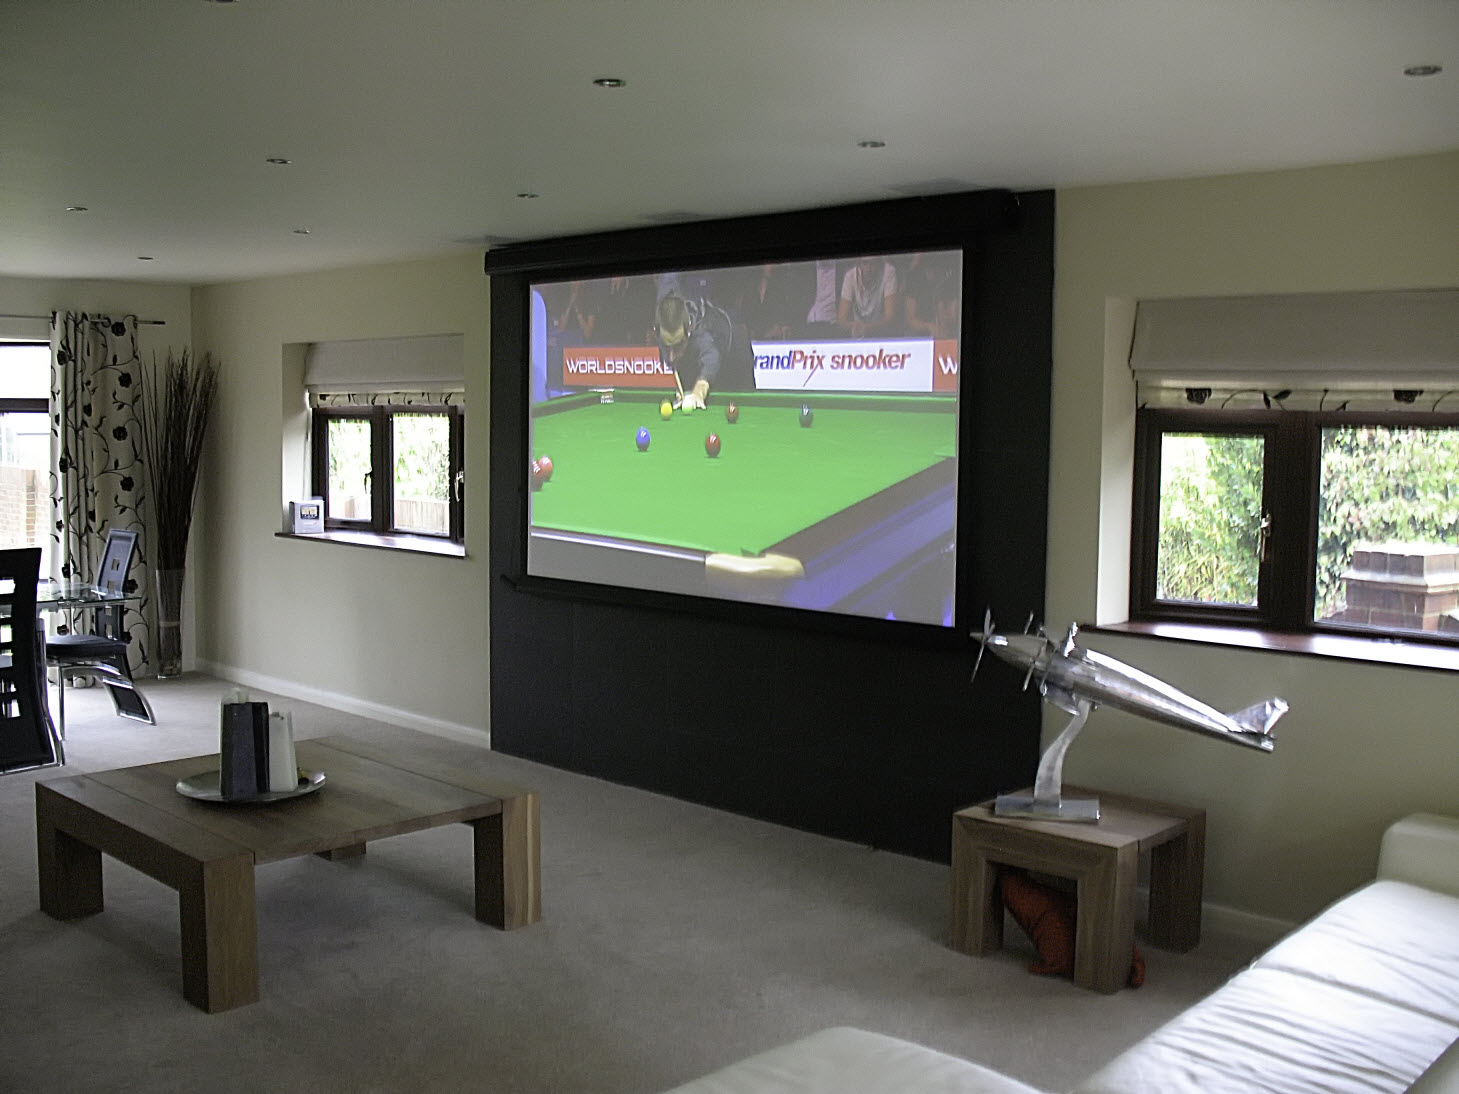 10608-m-tensioned-projection-screen-in-home-cinema